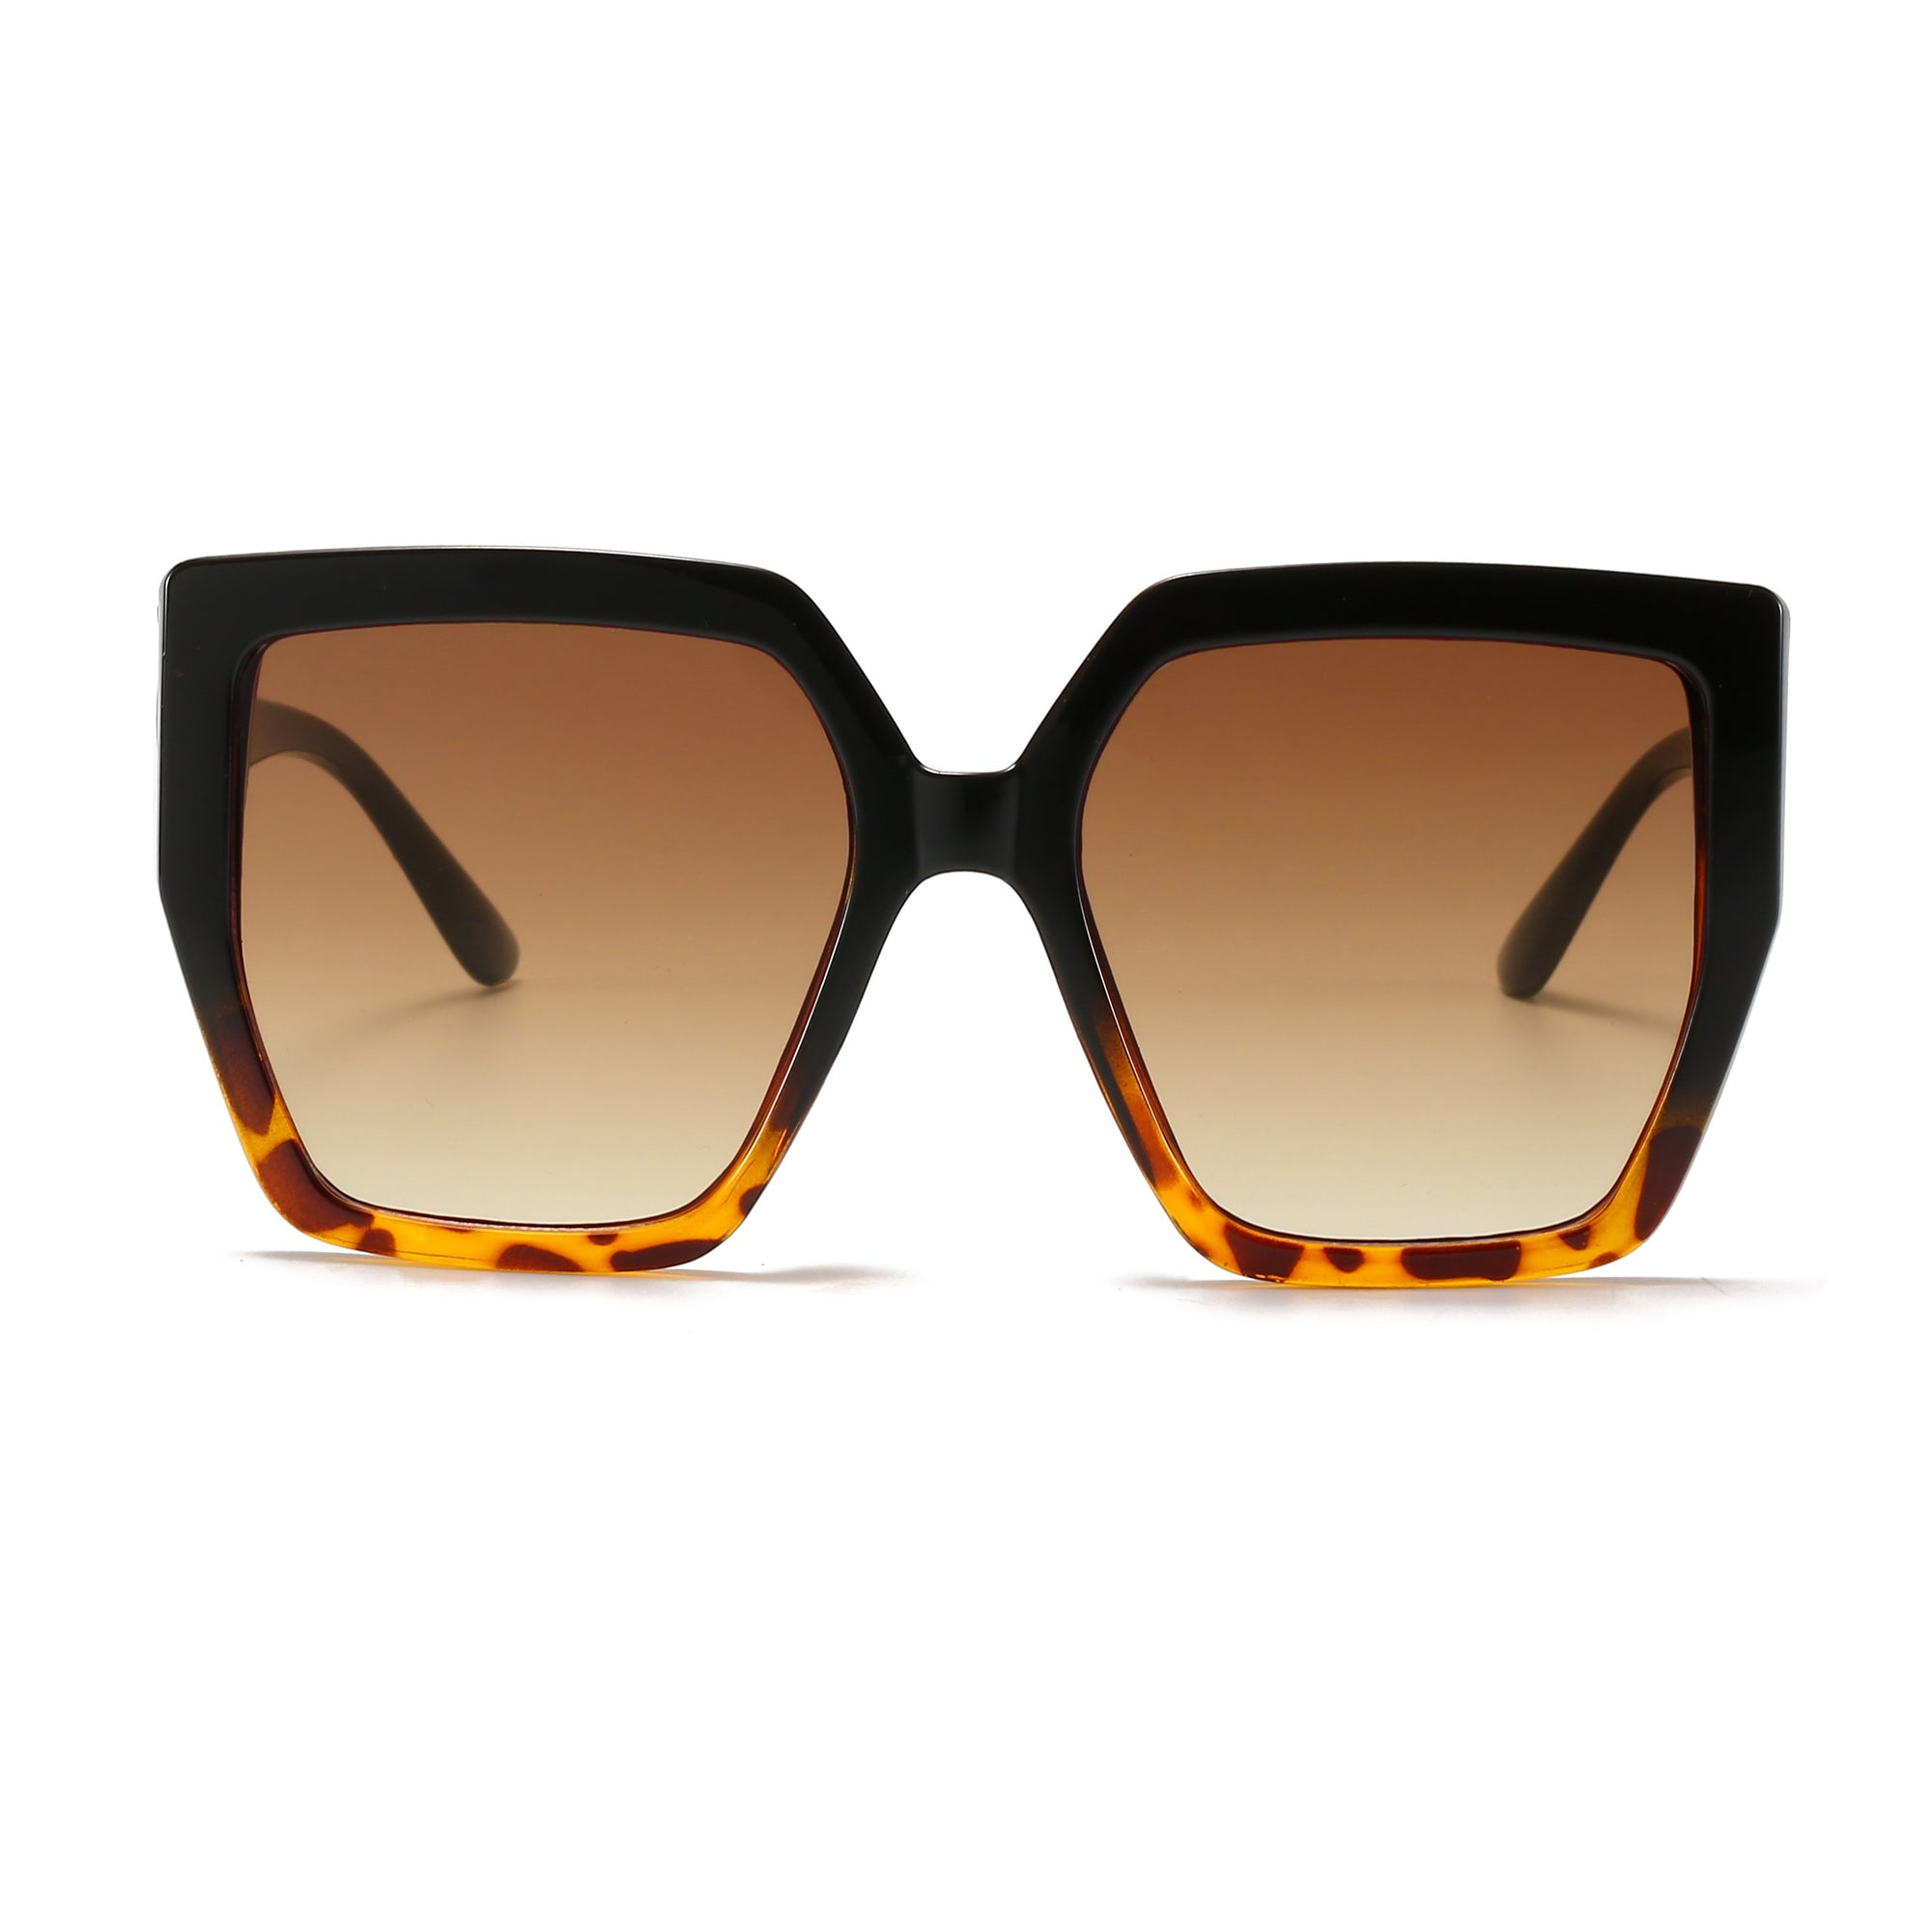 S1161 - Women Large Oversize Square Fashion Sunglasses